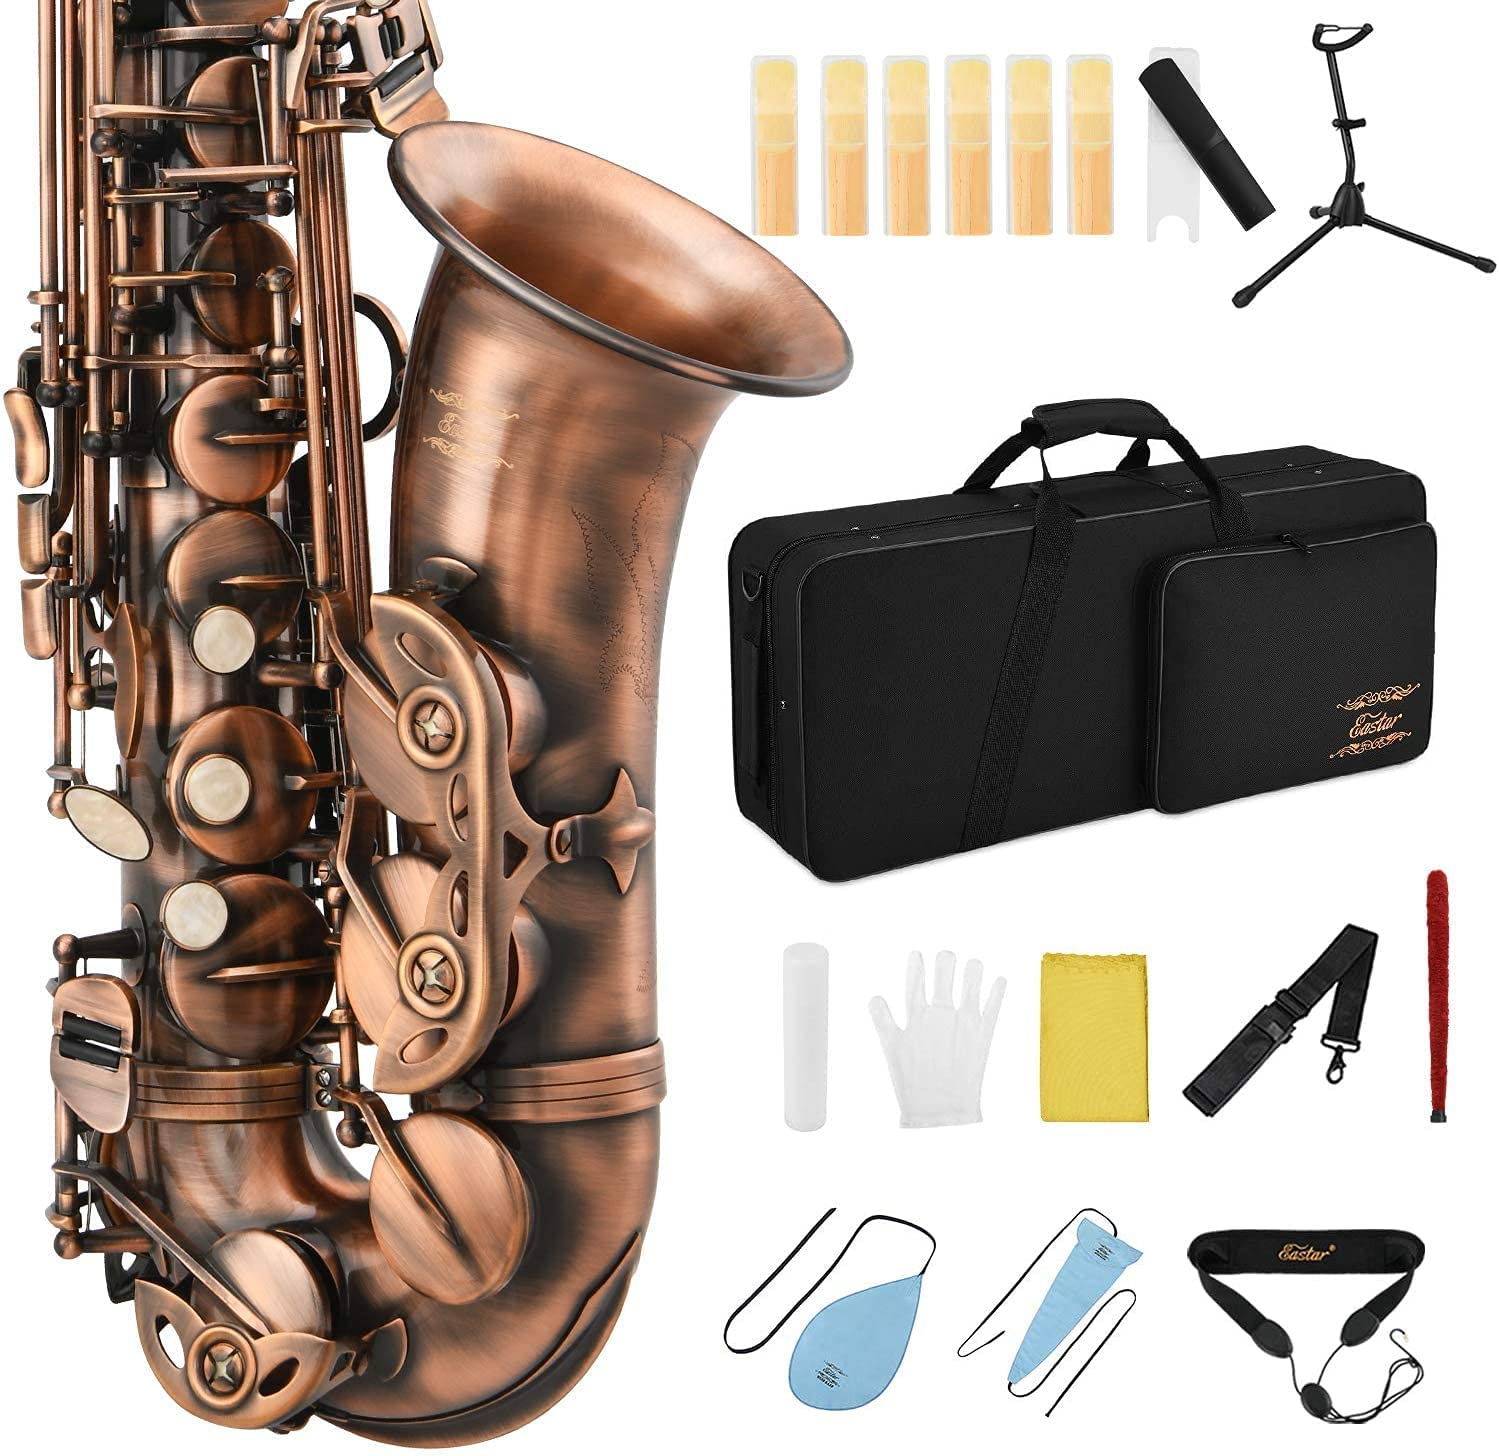 Eastar High quality new Alto Saxophone E Flat Sax Student Finish Antique Beg Outlet SALE